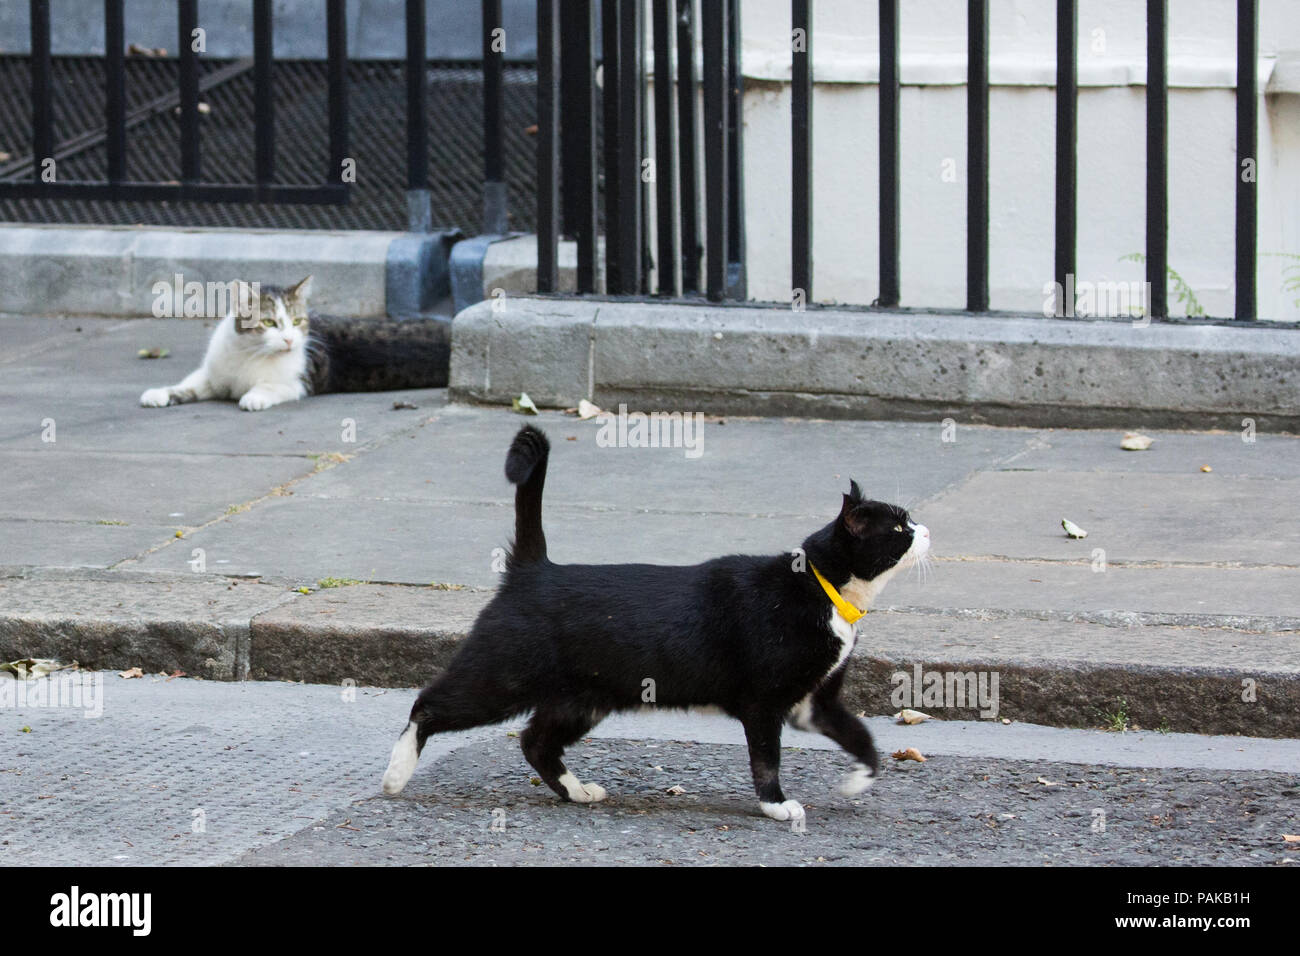 bc162334b04 Downing Street cats Larry and Palmerston in Downing Street on the hottest  day of the year. Larry, Chief Mouser to 10 Downing Street, and Palmerston,  ...